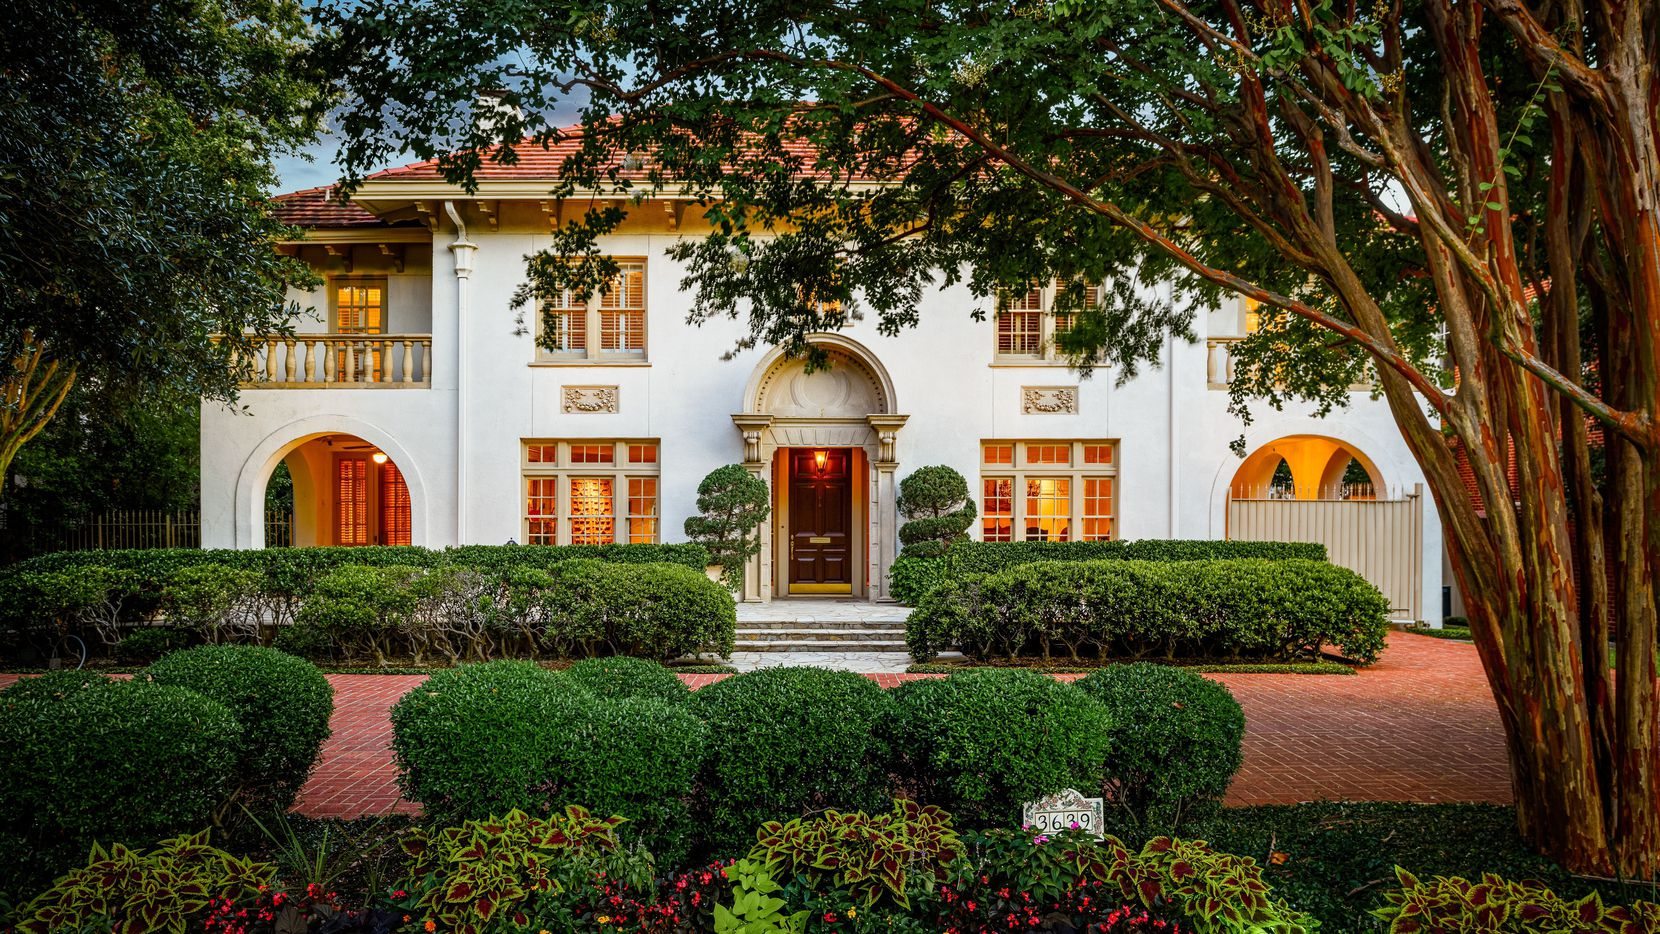 Situated on the country club tract of Highland Park and on highly-coveted 3639 Beverly Drive, this 1920s family home boasts Spanish architectural and design elements well preserved for nearly 100 years. It's listed for sale for $5,495,000.